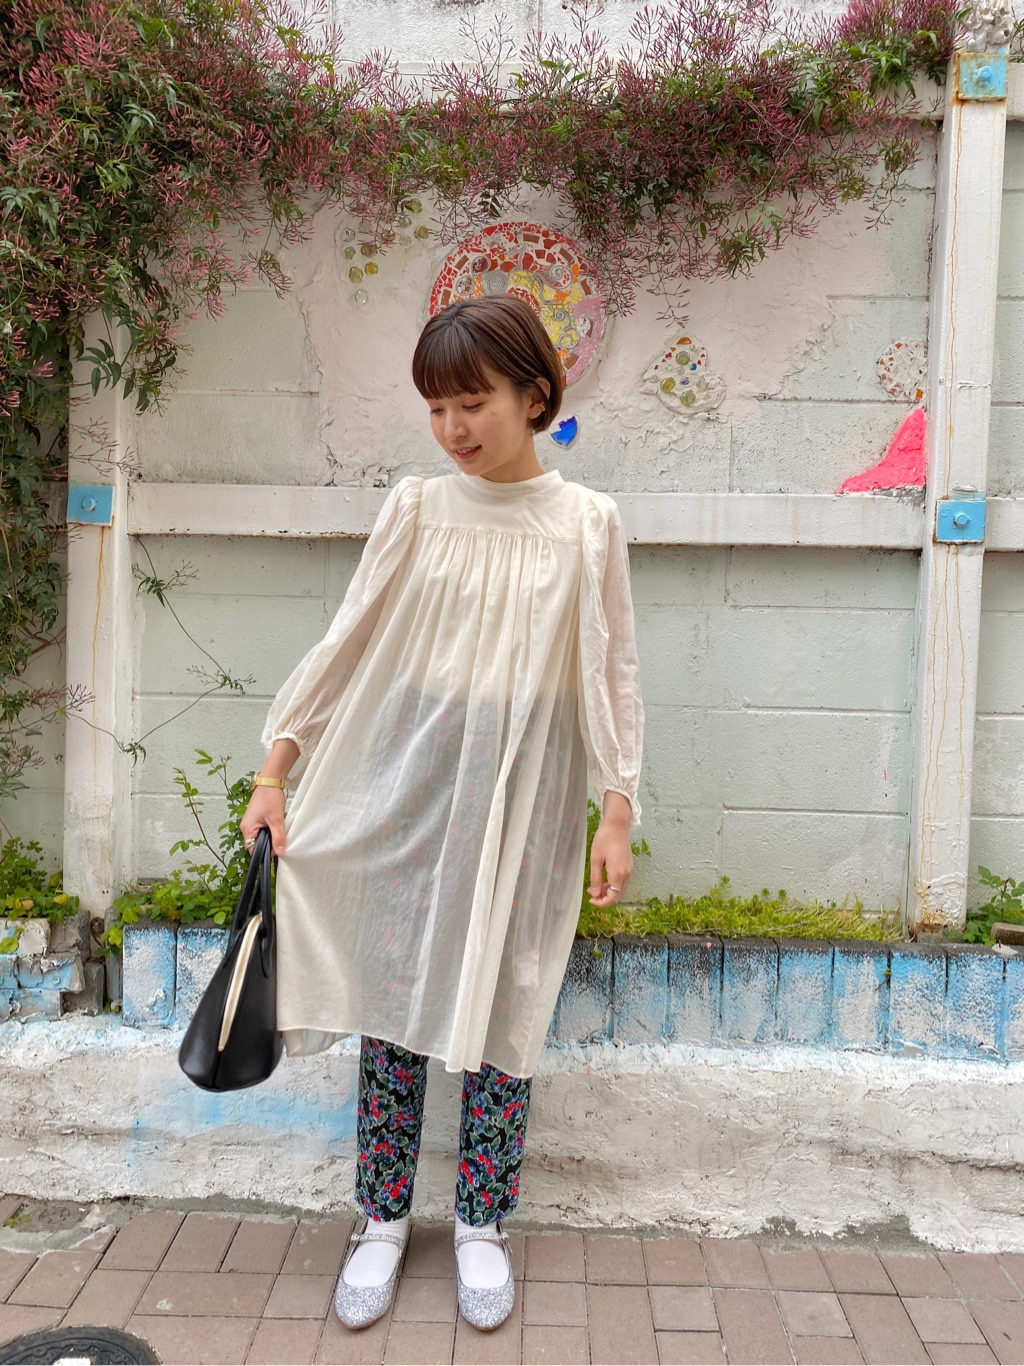 Dot and Stripes CHILD WOMAN ラフォーレ原宿 身長:152cm 2020.04.07